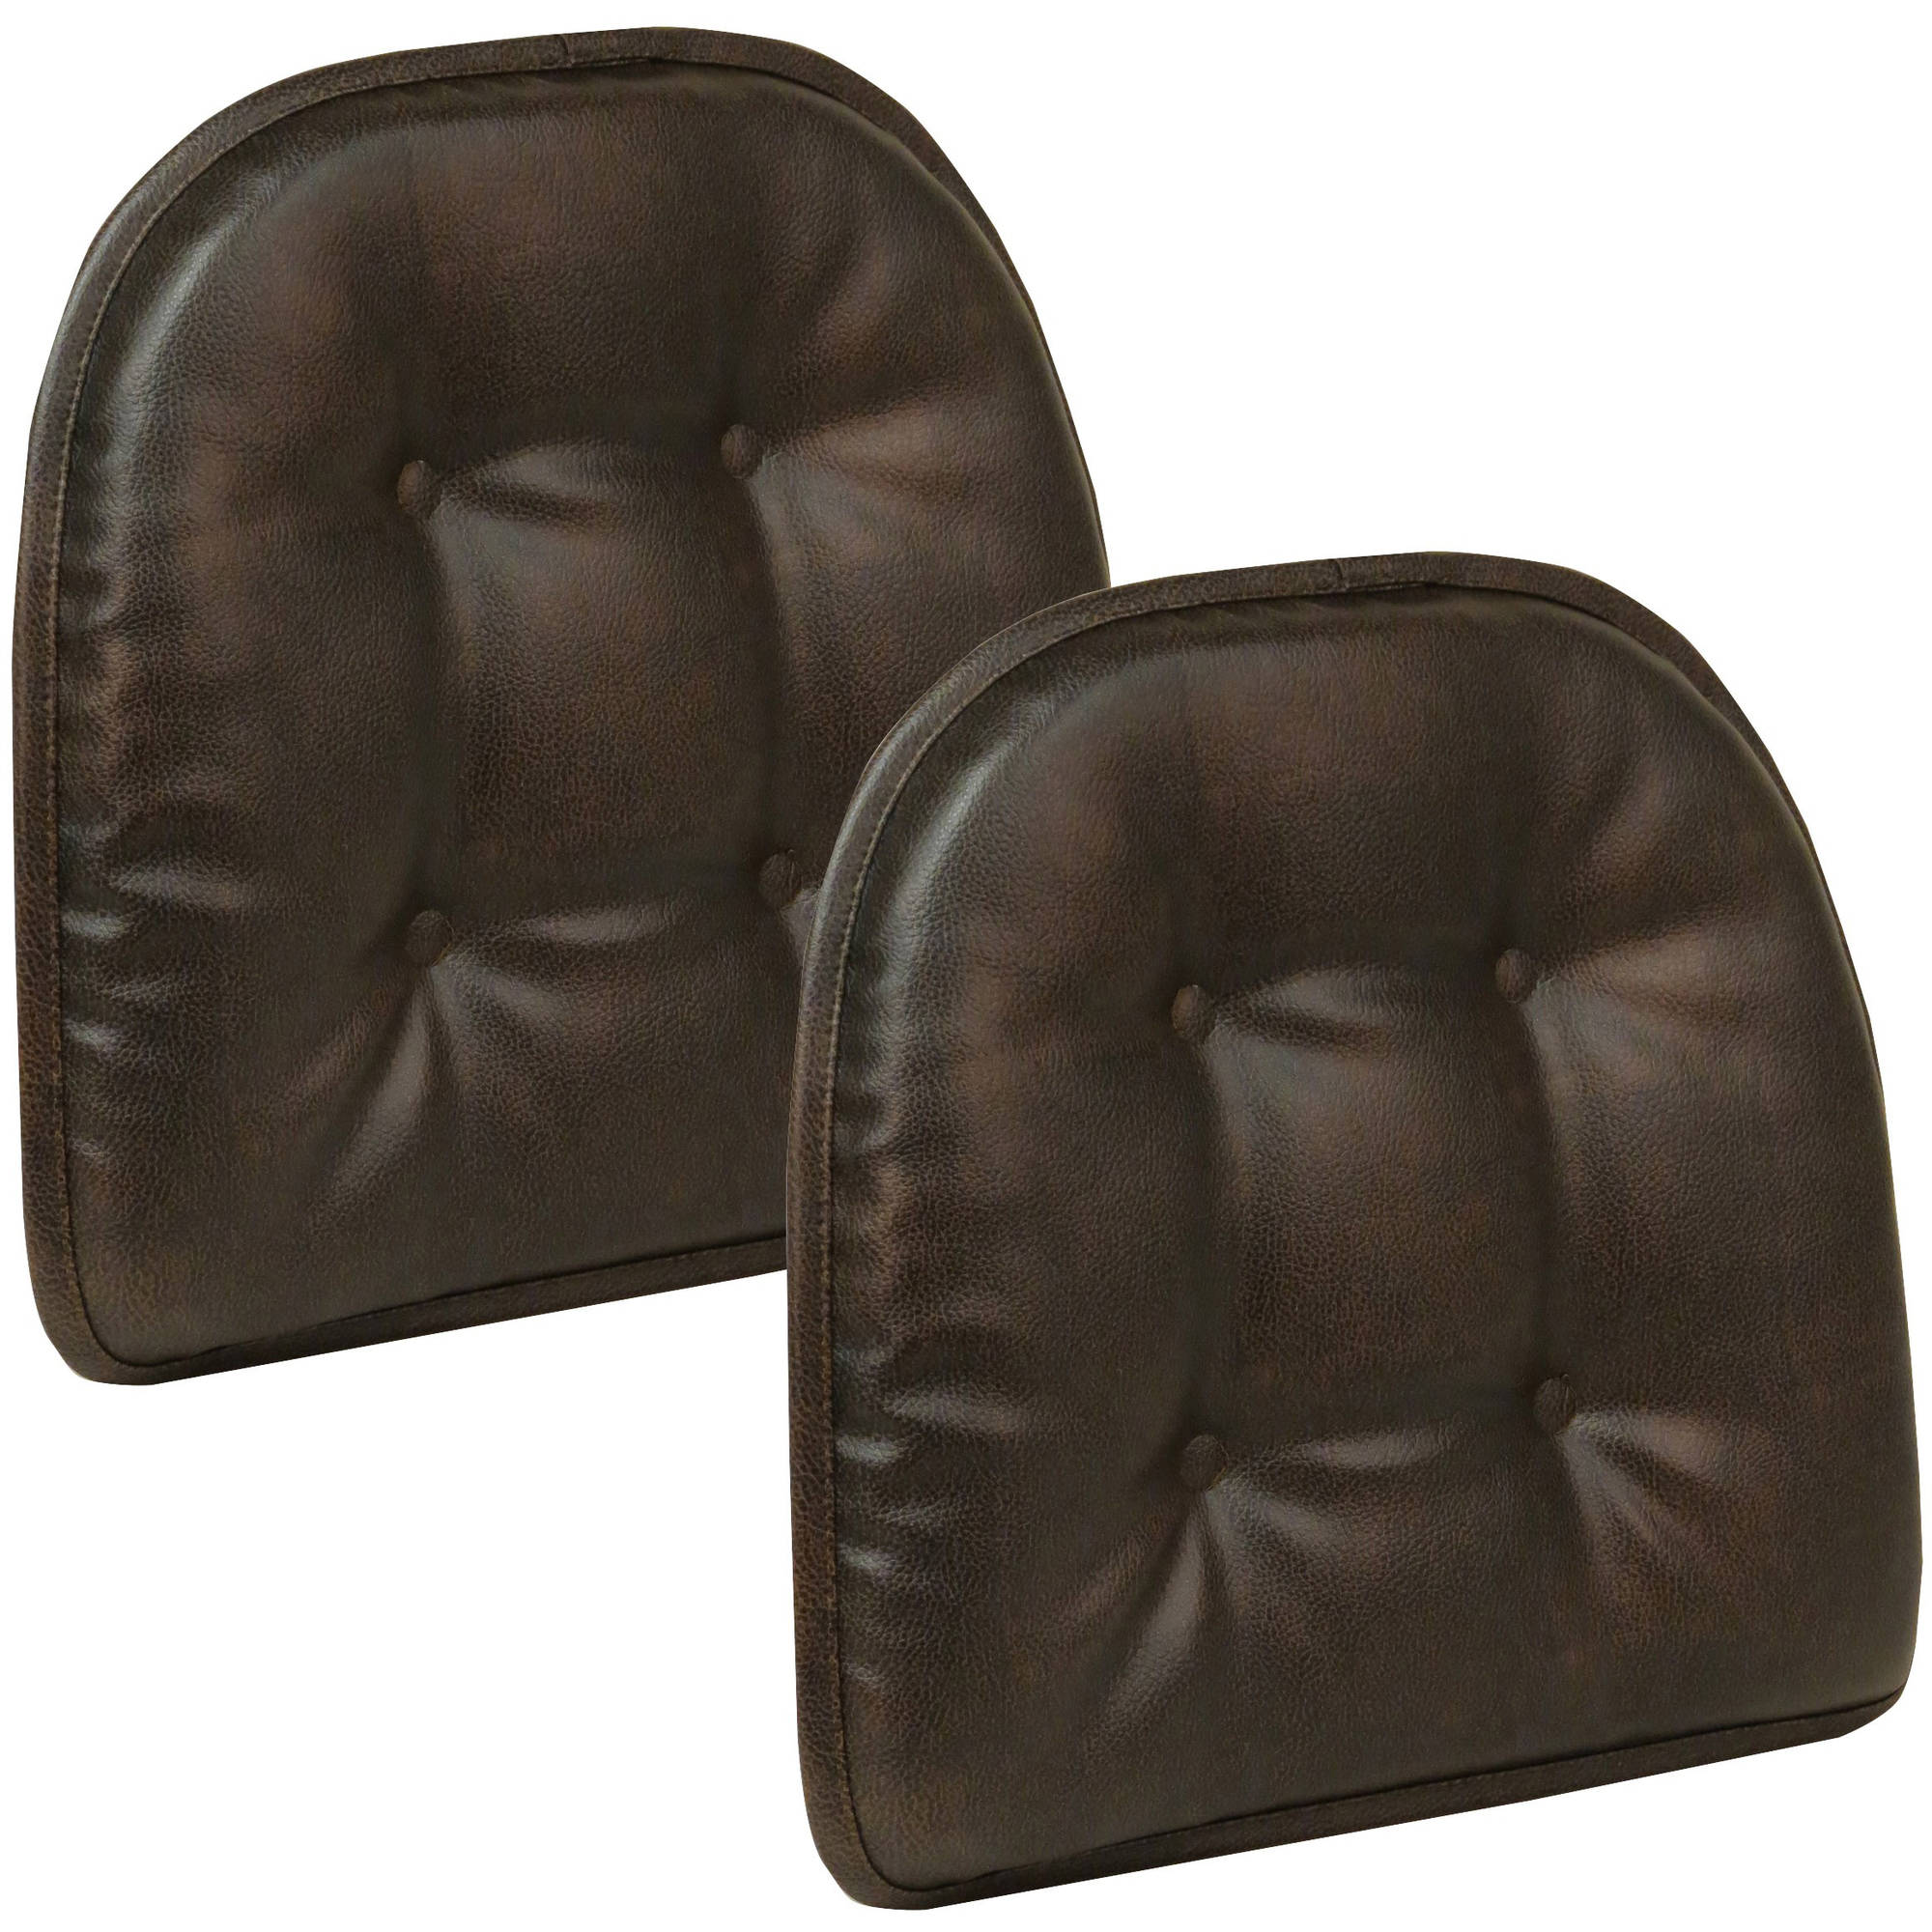 "Gripper Non Slip 15"" x 16"" Faux Leather Tufted Chair Cushions, Set of 2"